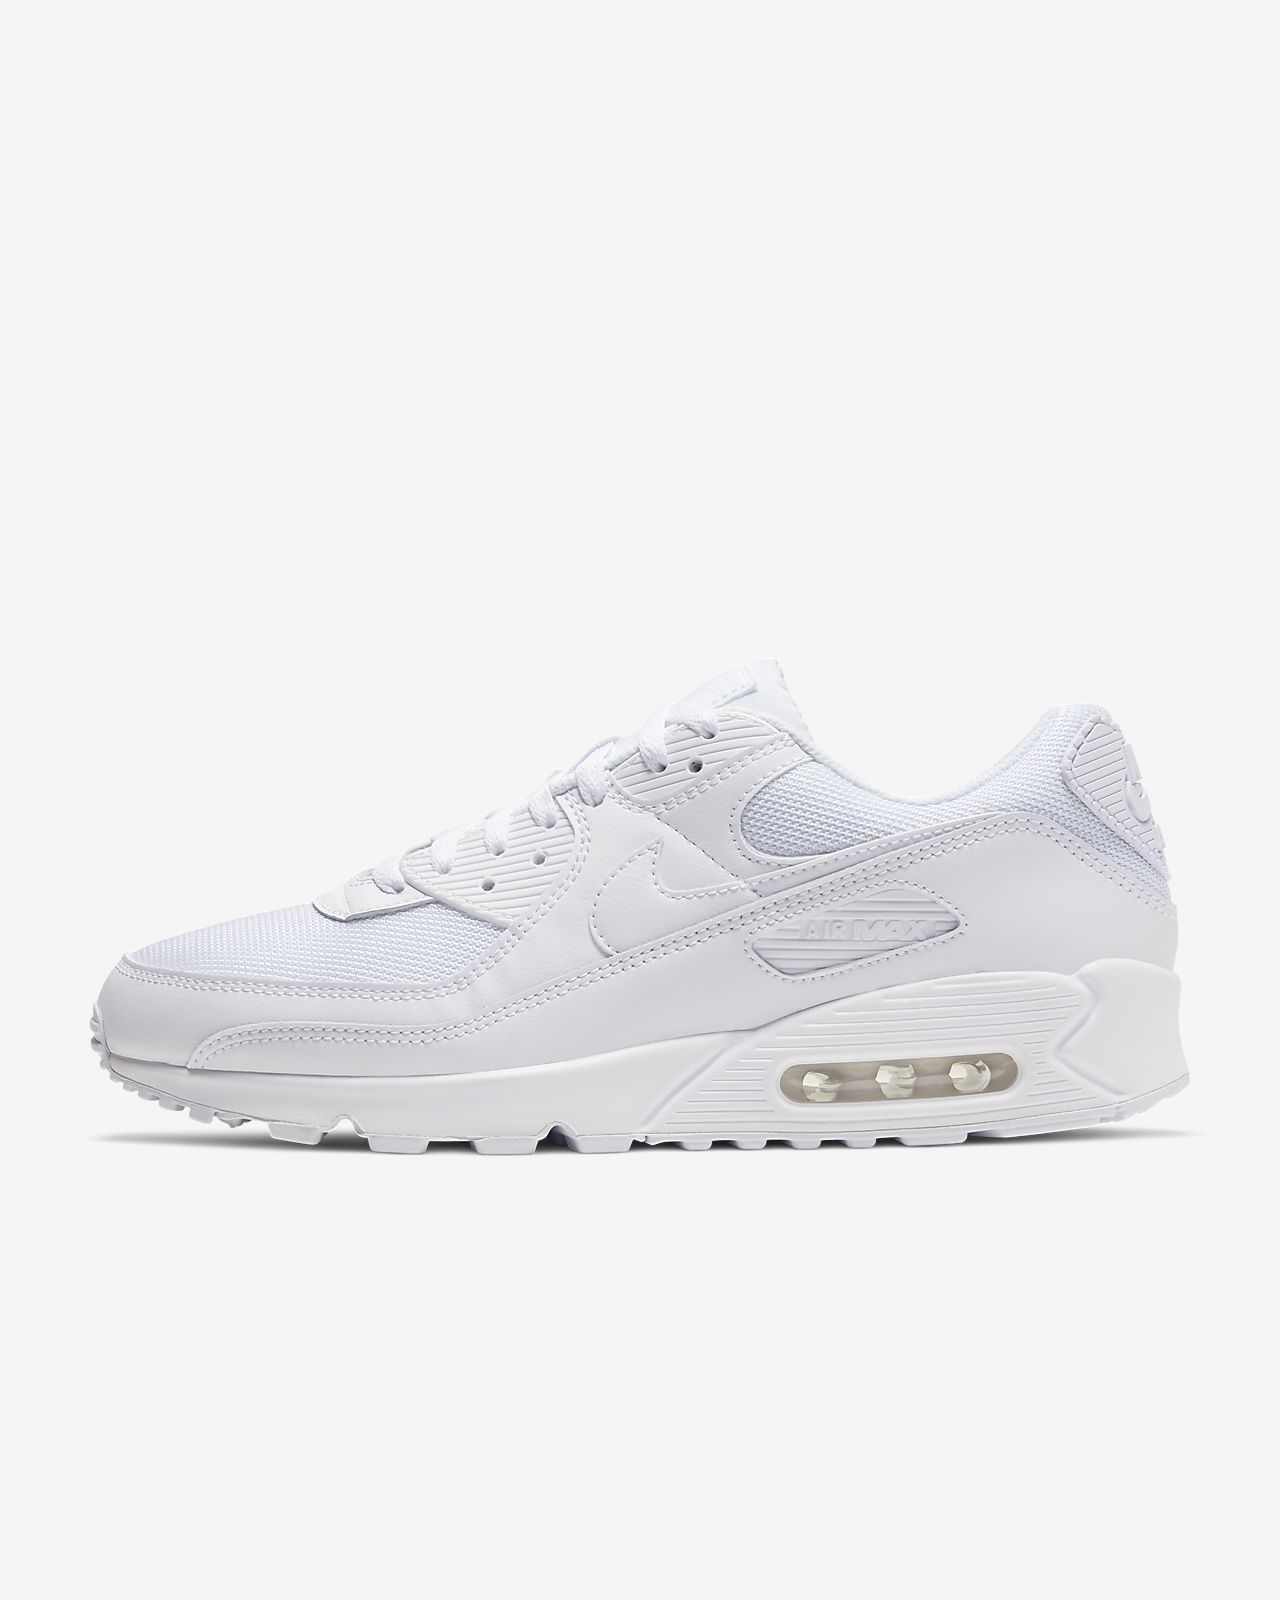 nike air max 90 men shoes sale